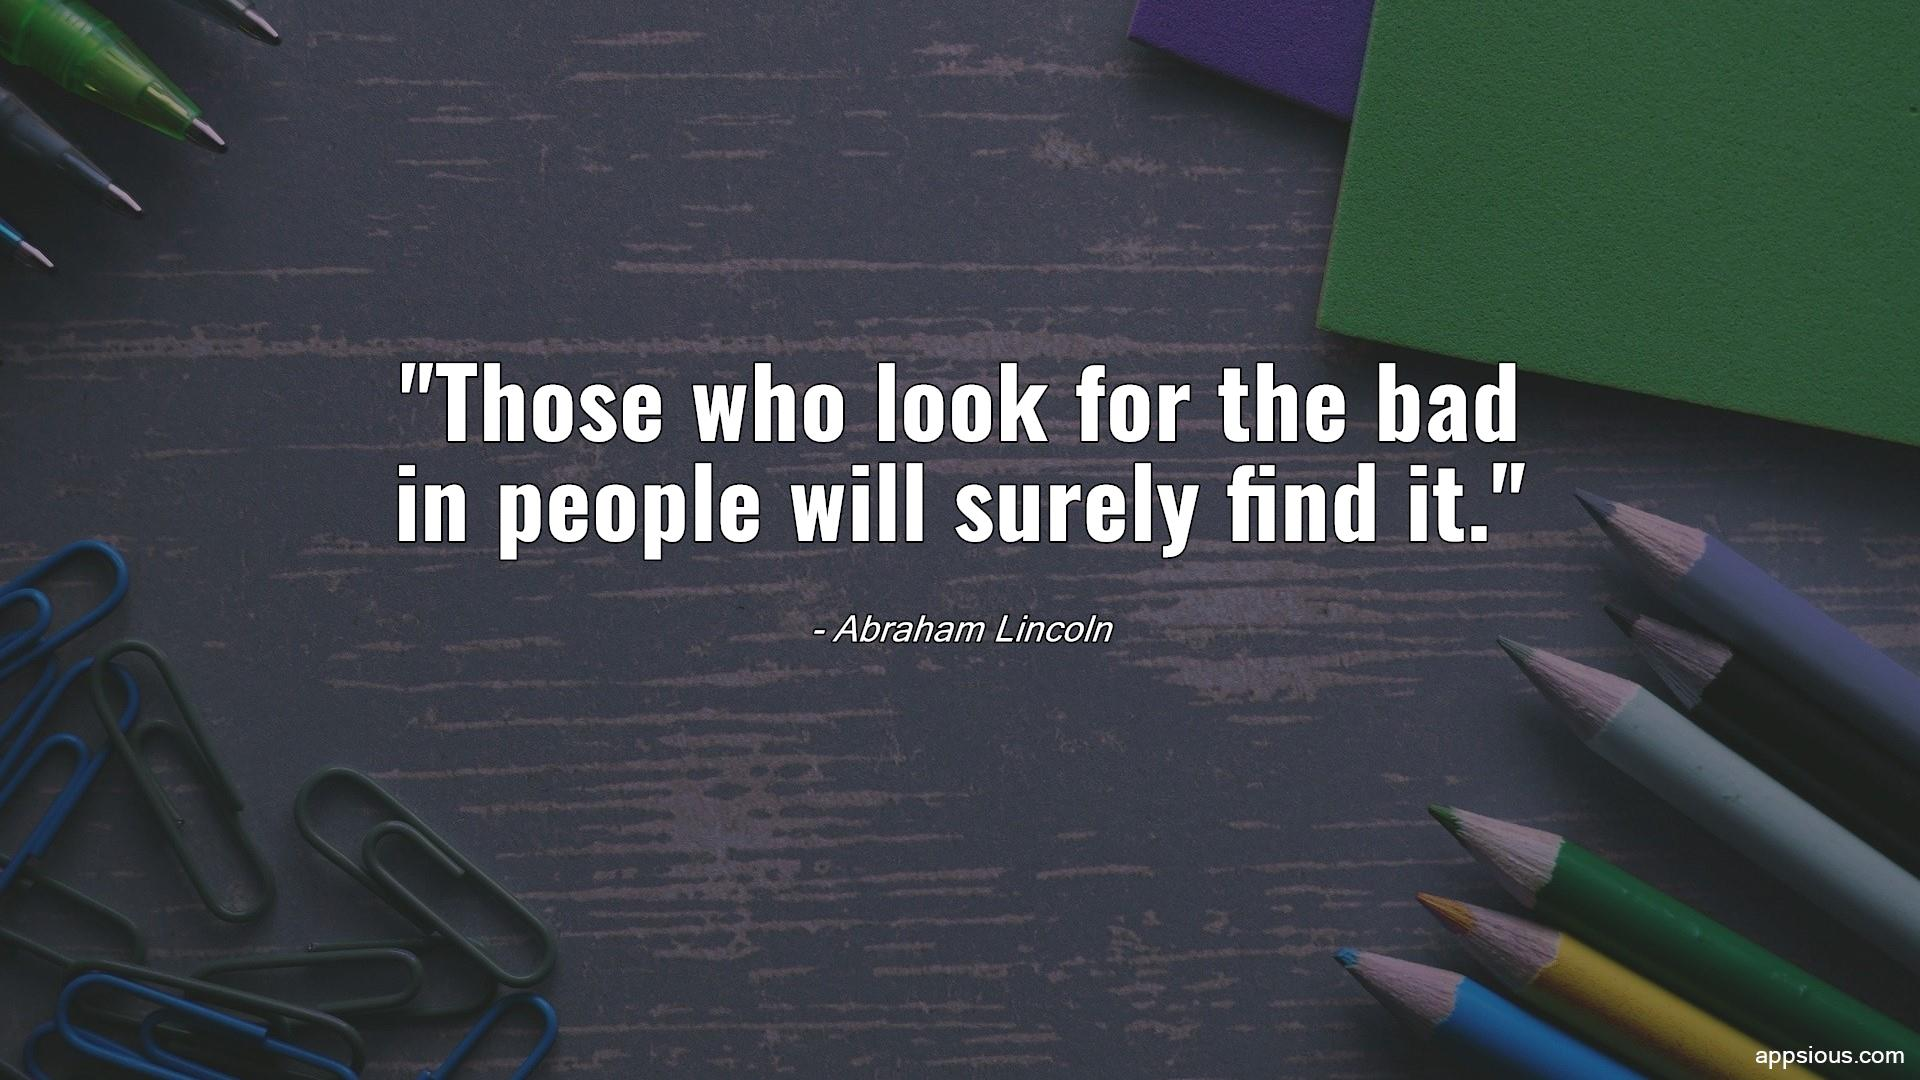 Those who look for the bad in people will surely find it.